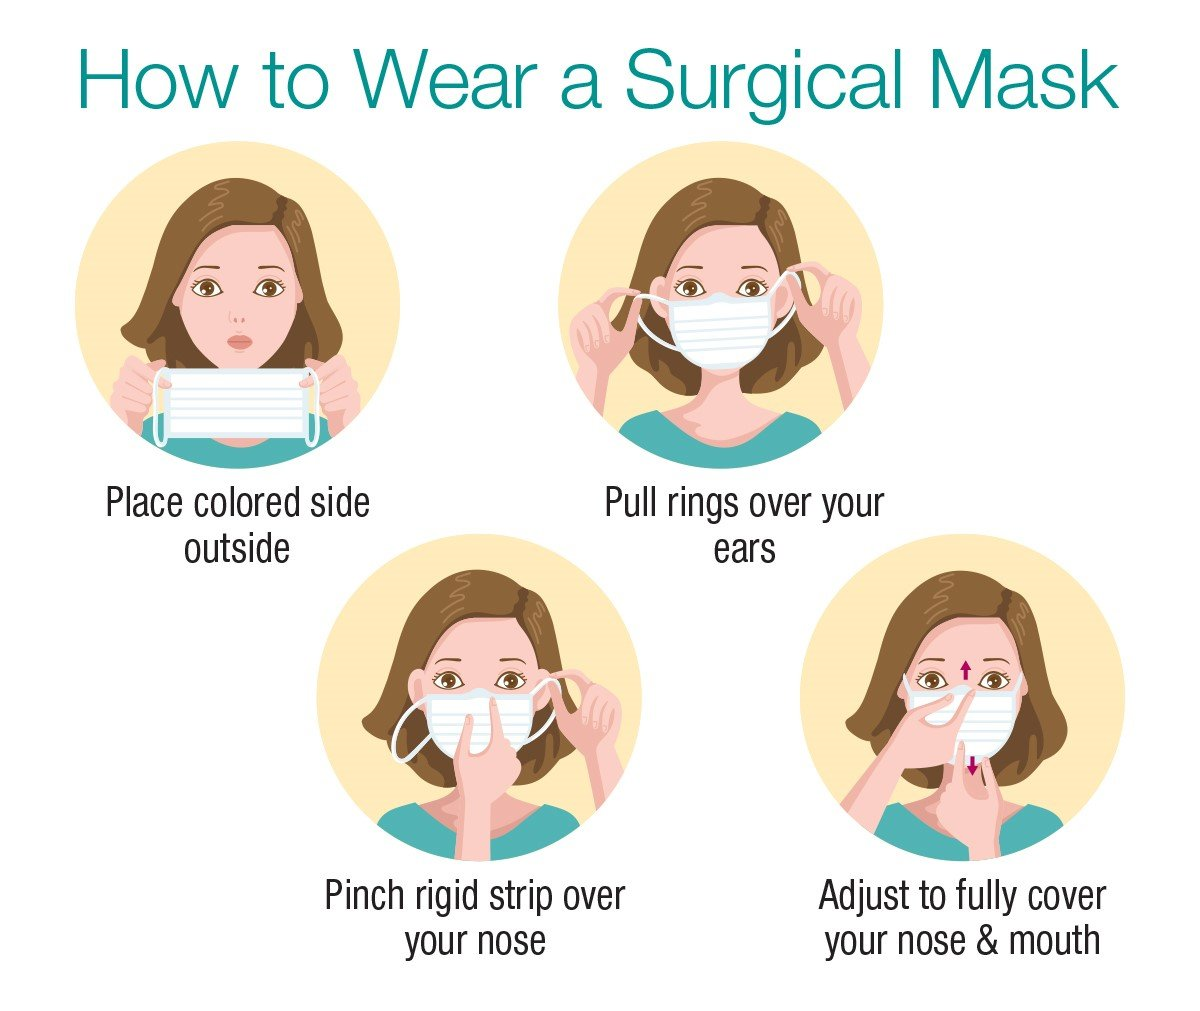 Surgical Mask Graphic